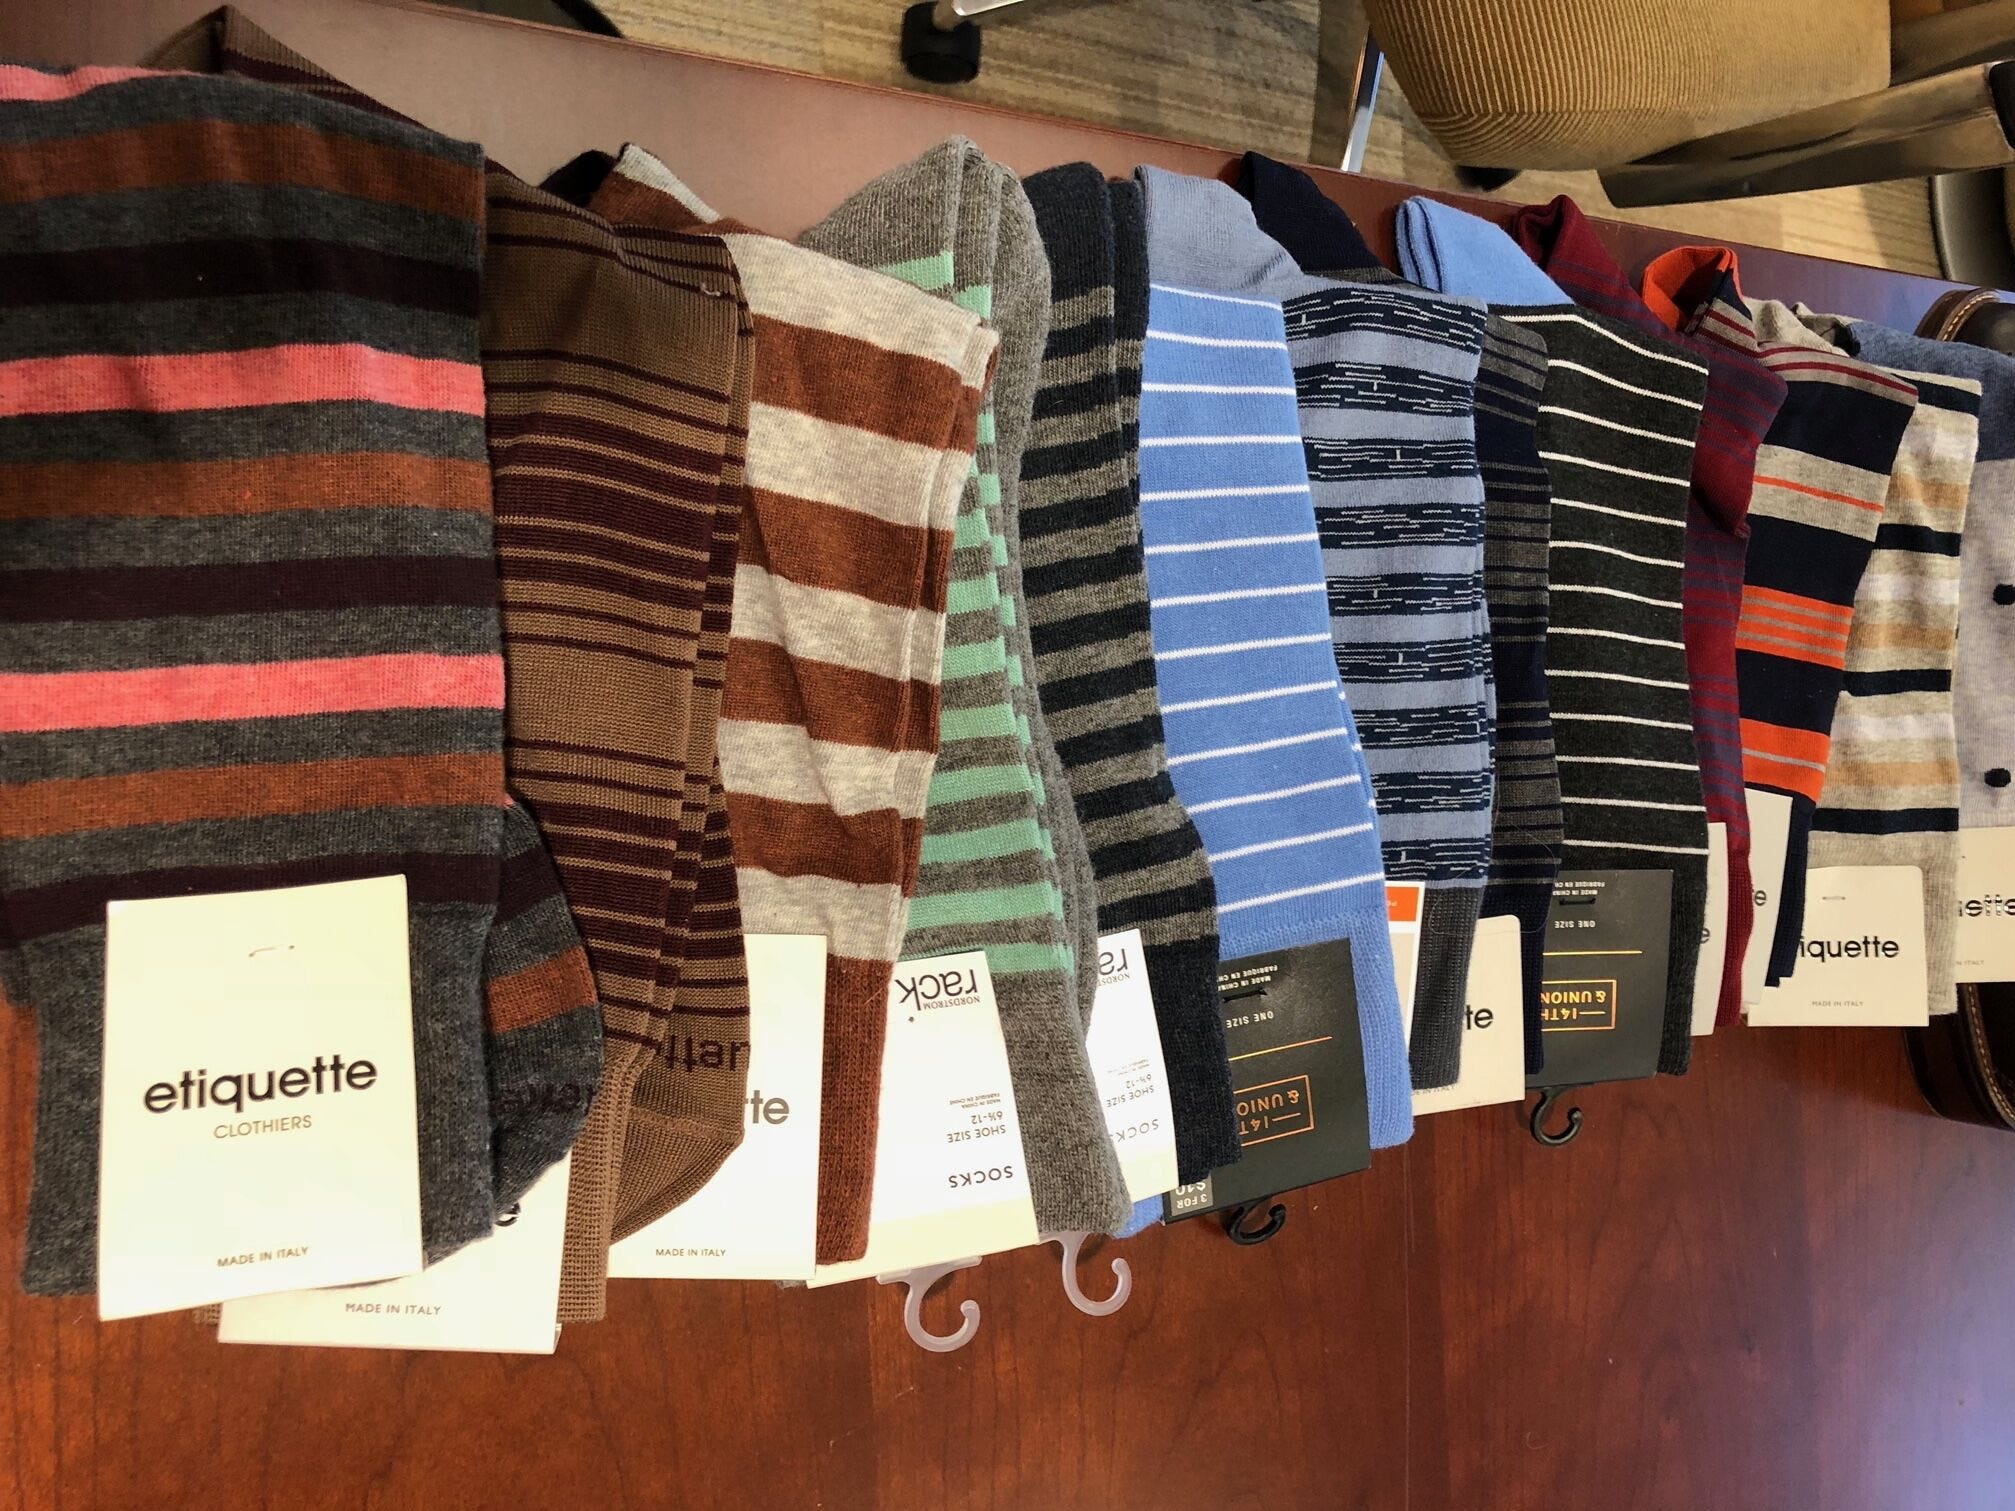 """A sample of the socks """"Top Chef"""" stylist Charlotte Rose Coleman has selected for chef Tom Colicchio's wardrobe"""